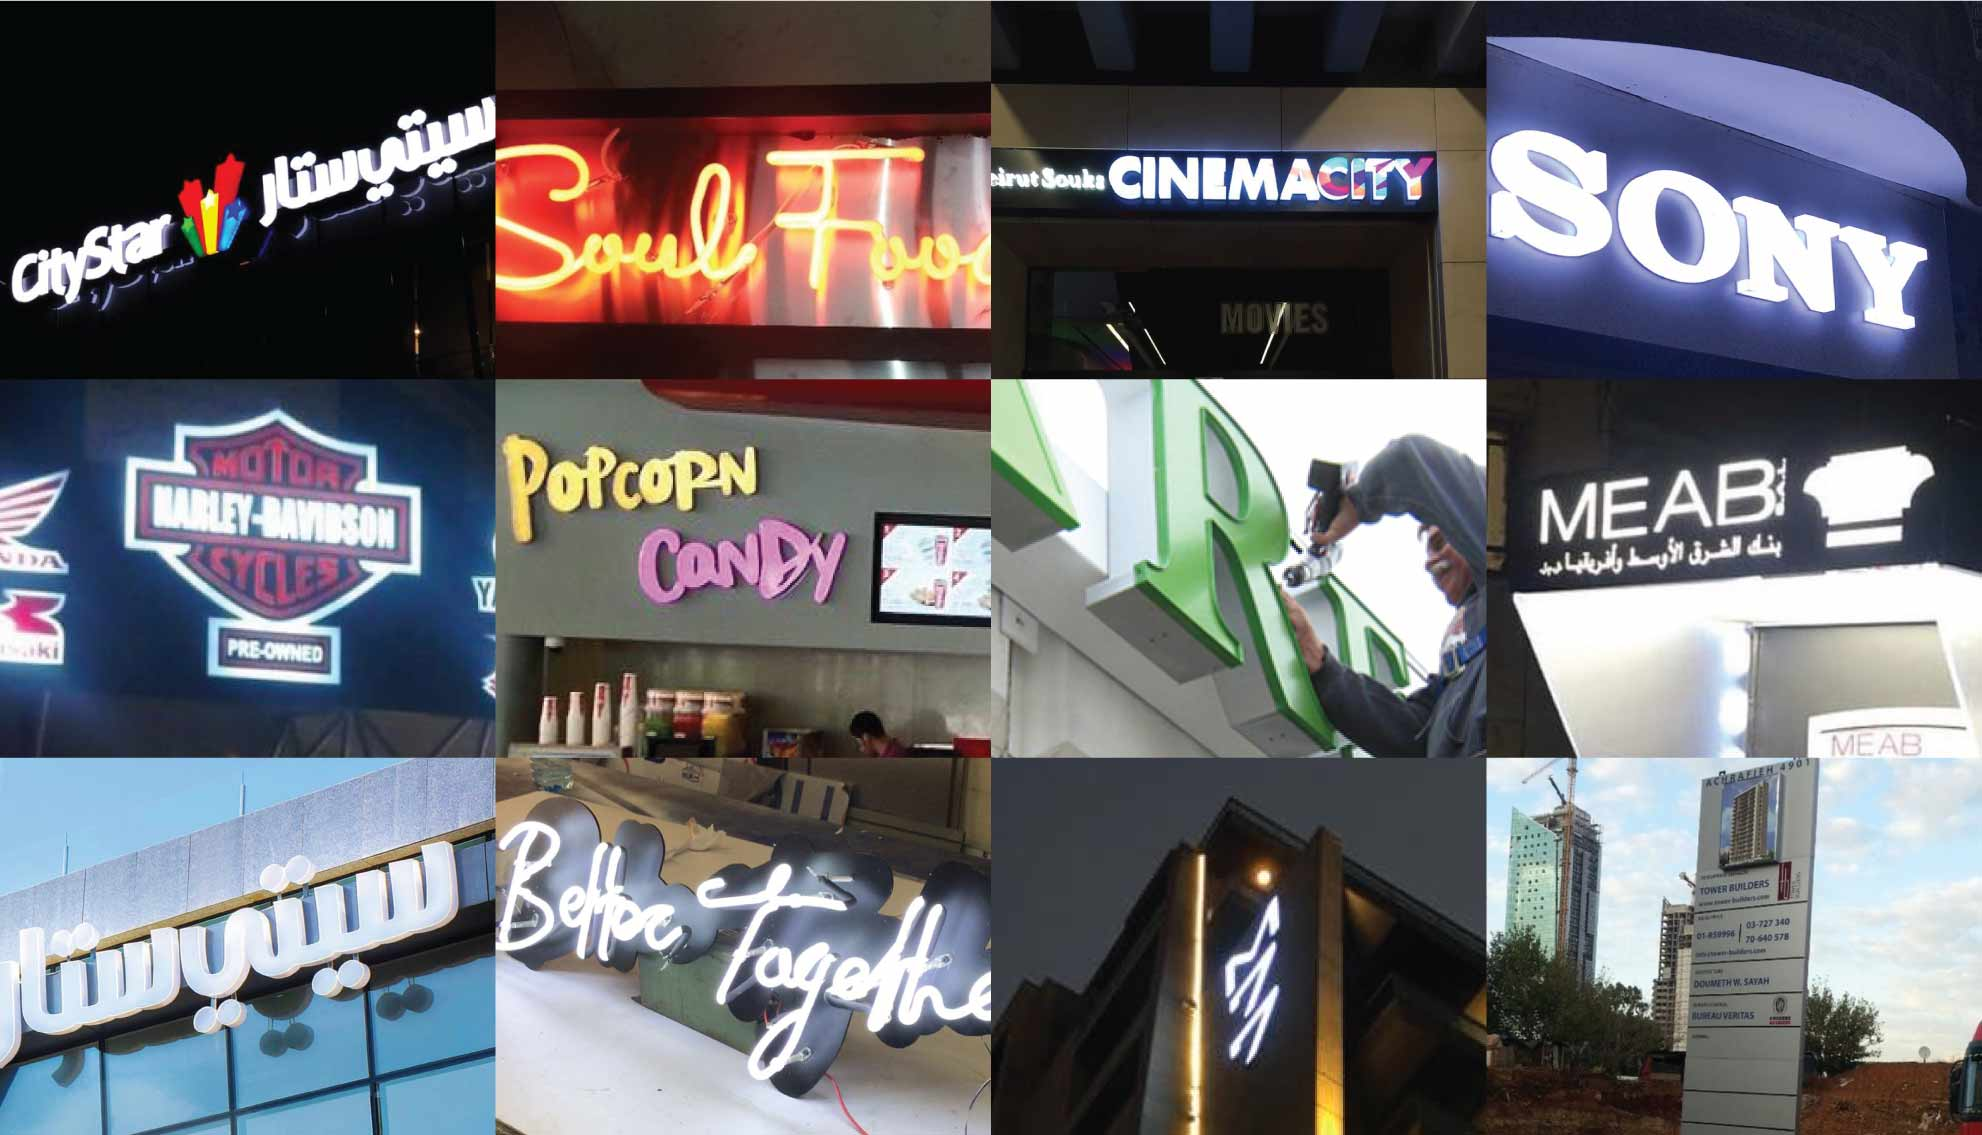 About Super Neon Sabra a custom signs manufacturer that has over 60 years of experience in providing innovative interior and exterior signs from design and manufacturing to installation